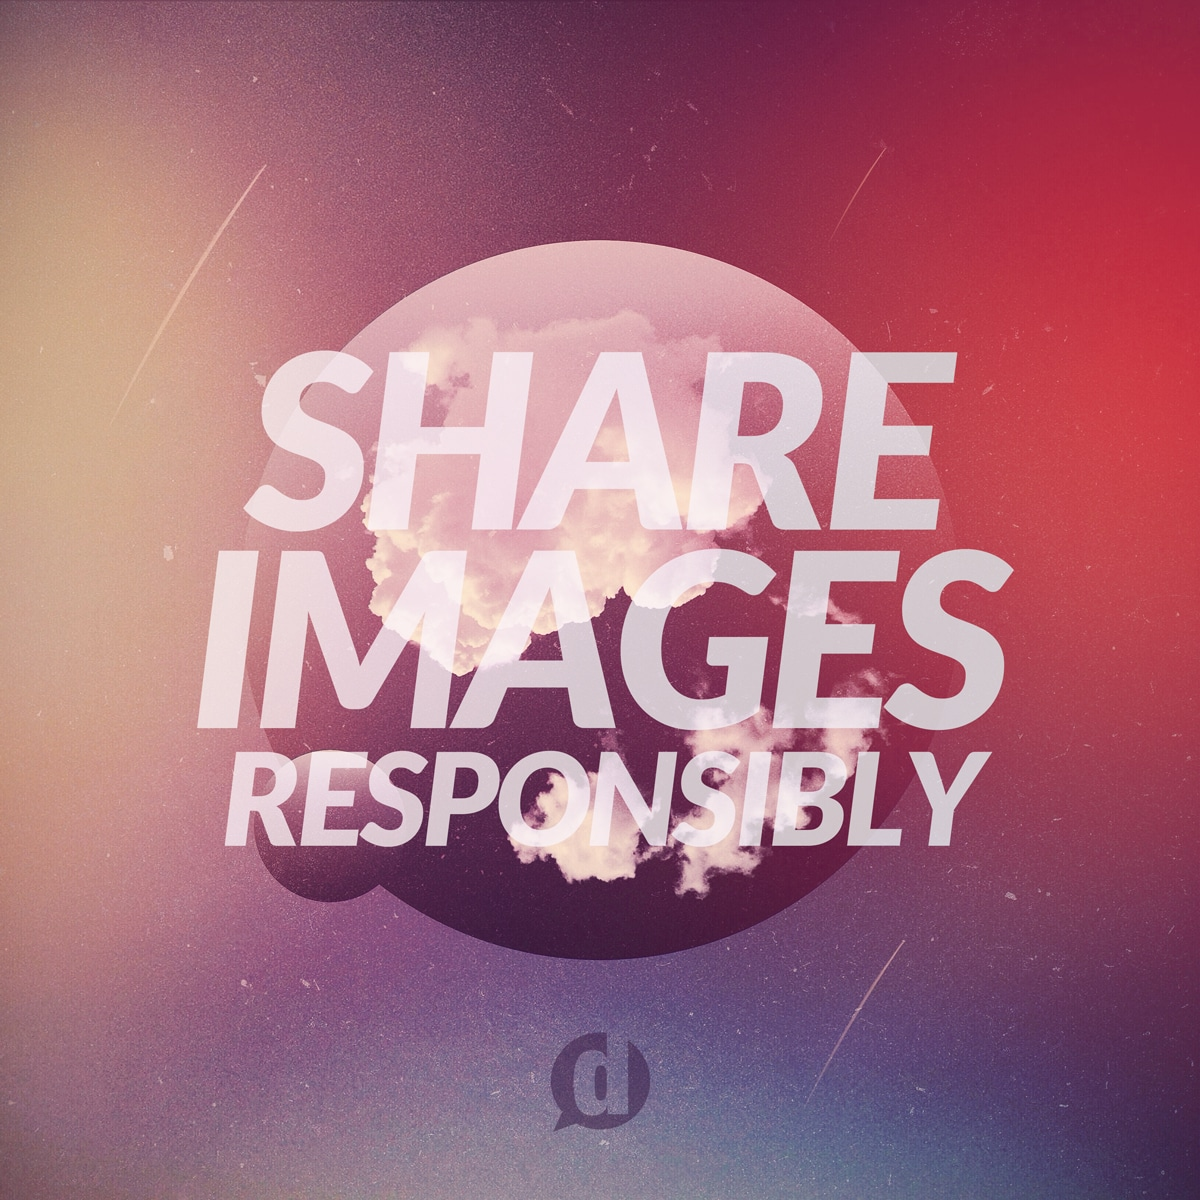 share images responsibly